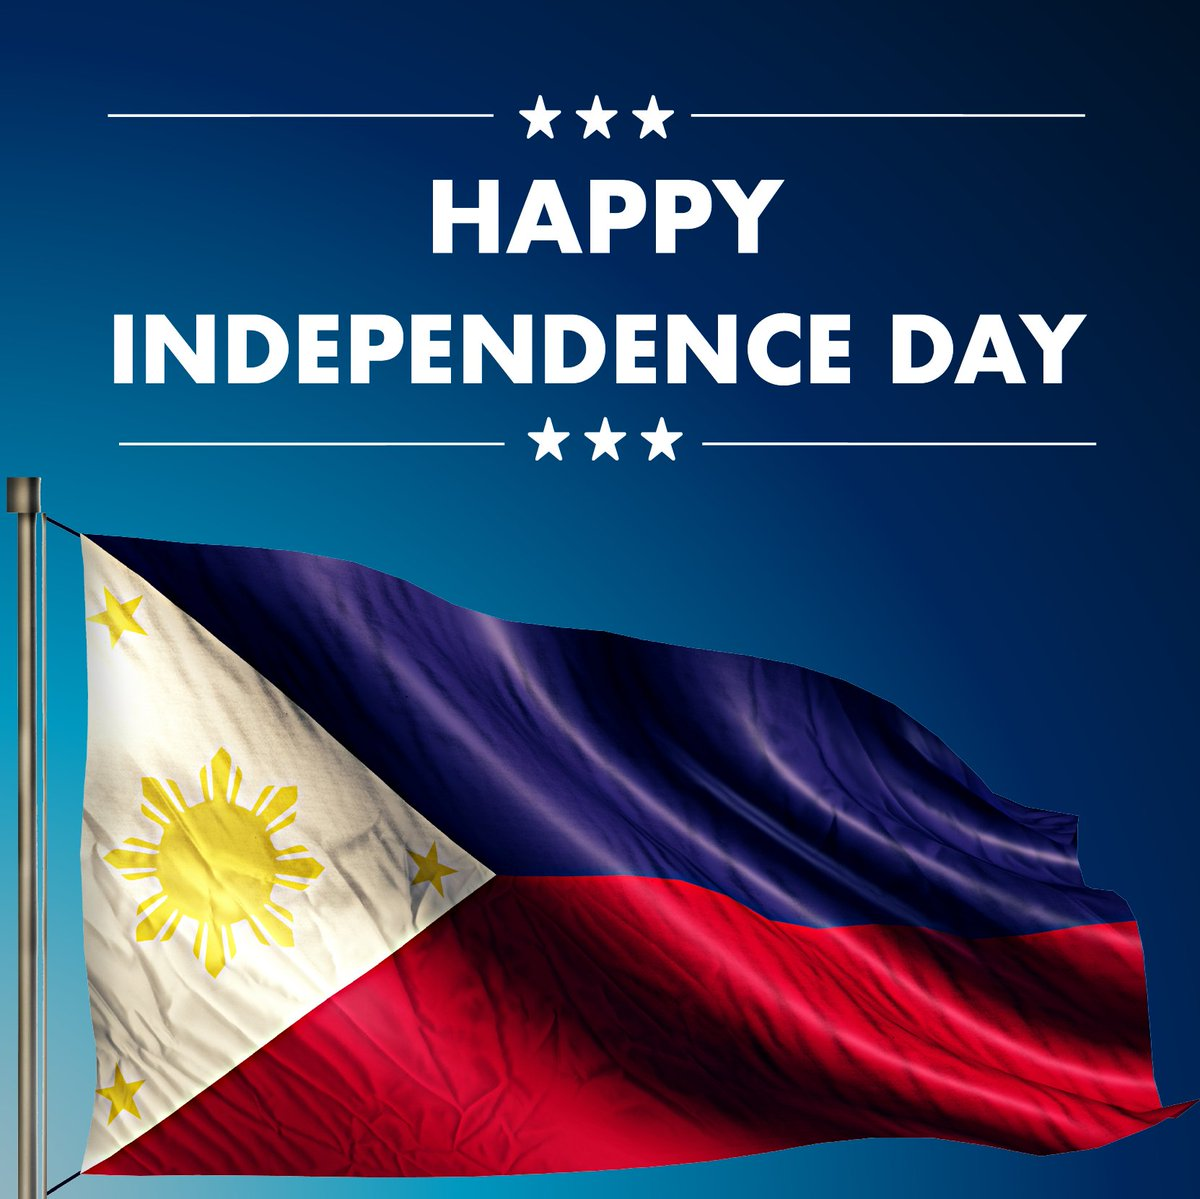 Happy Independence Day Philippines 2018